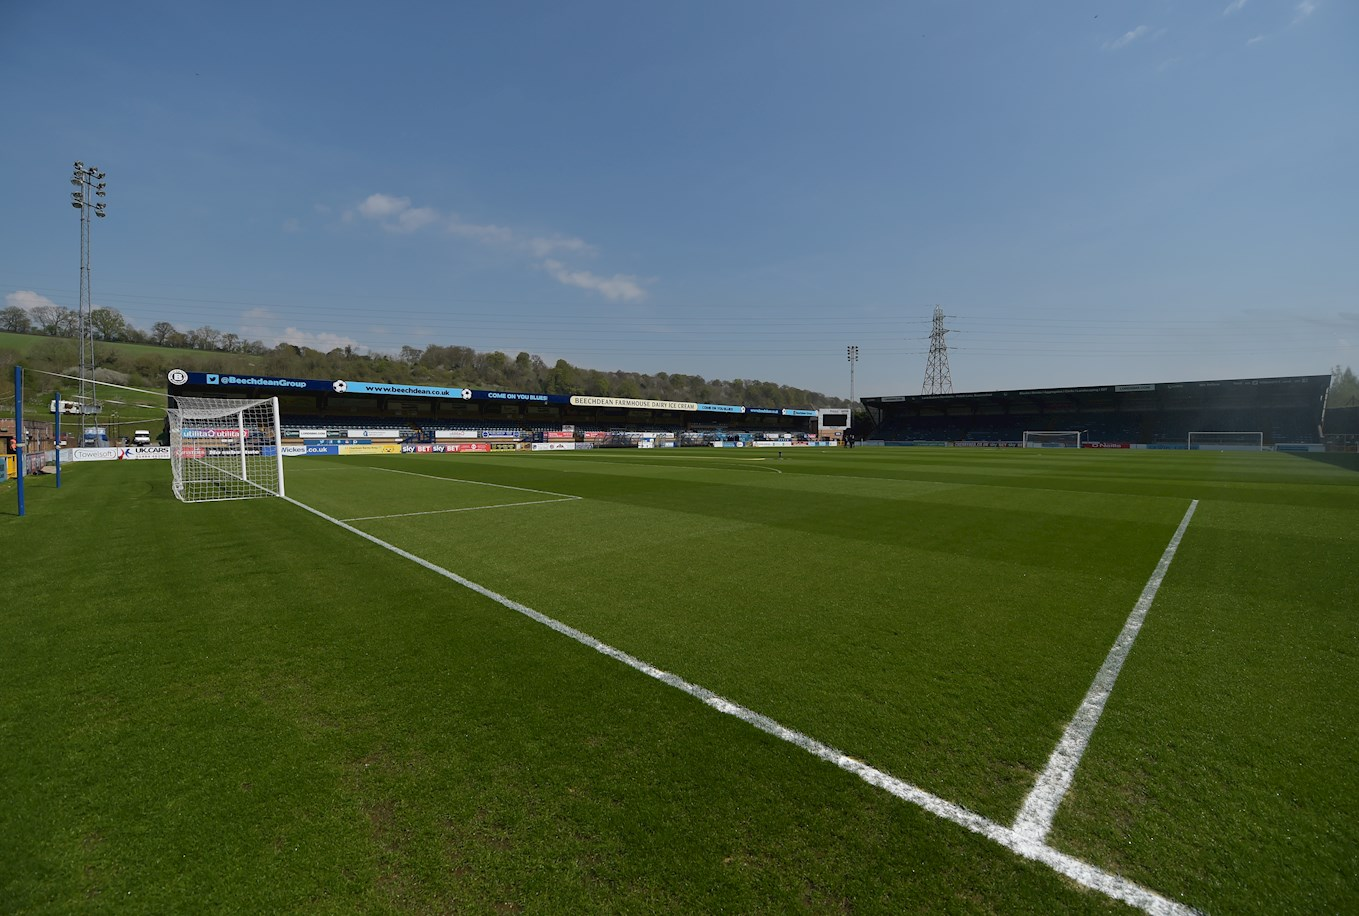 Wycombe's home ground, Adams Park